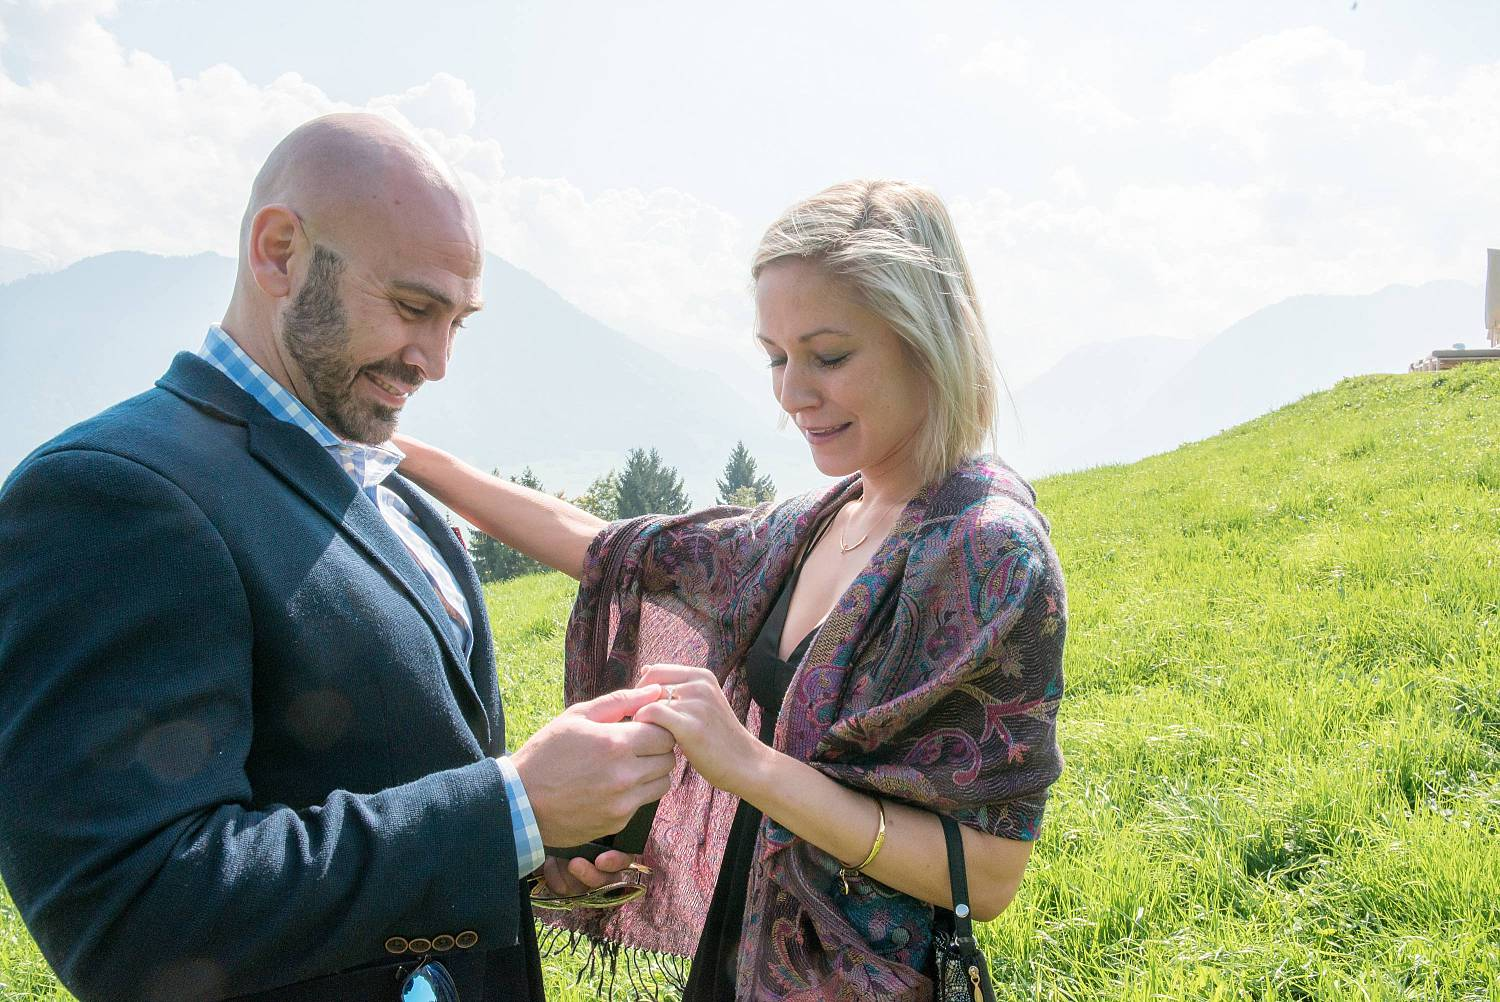 Surprise marriage proposal near Lucerne